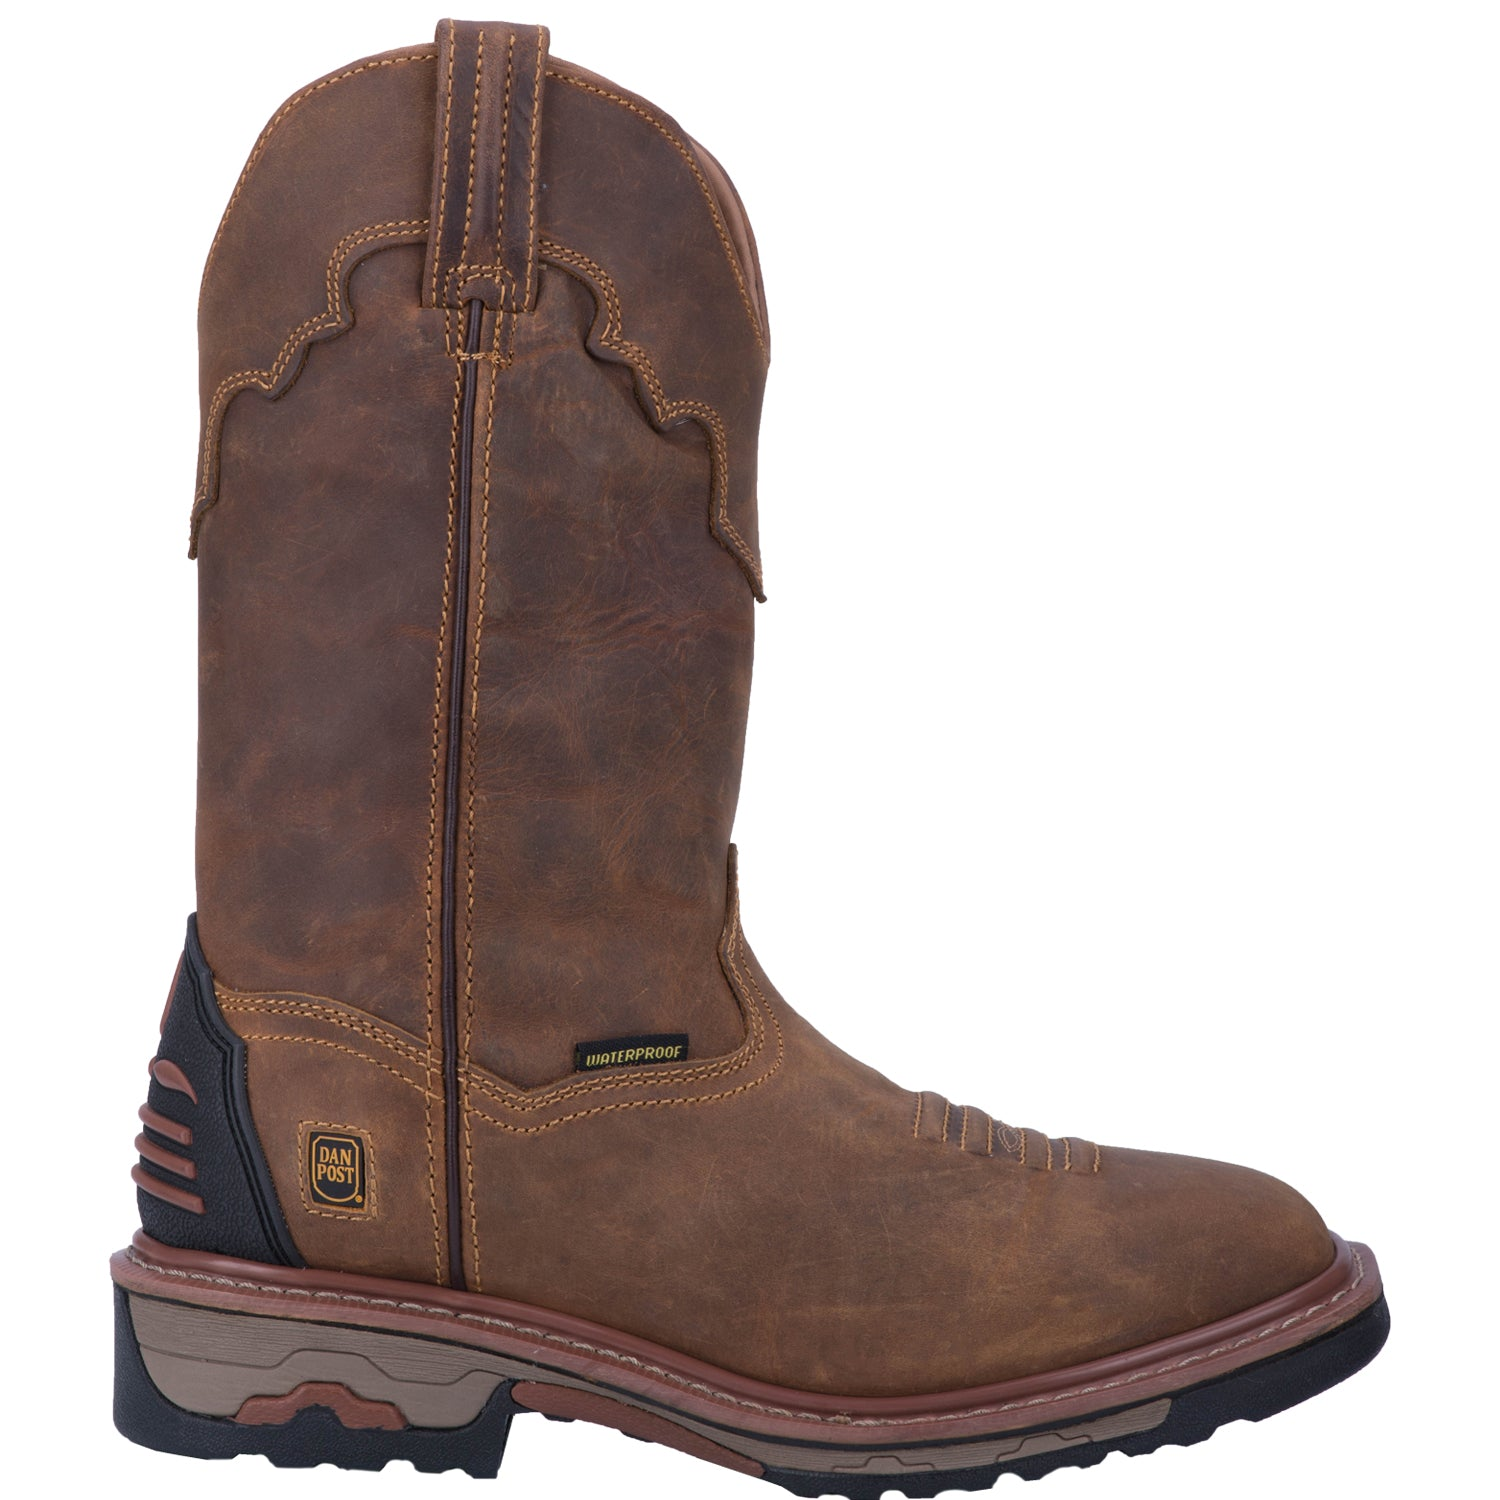 BLAYDE- WATERPROOF LEATHER BOOT 4194435498026